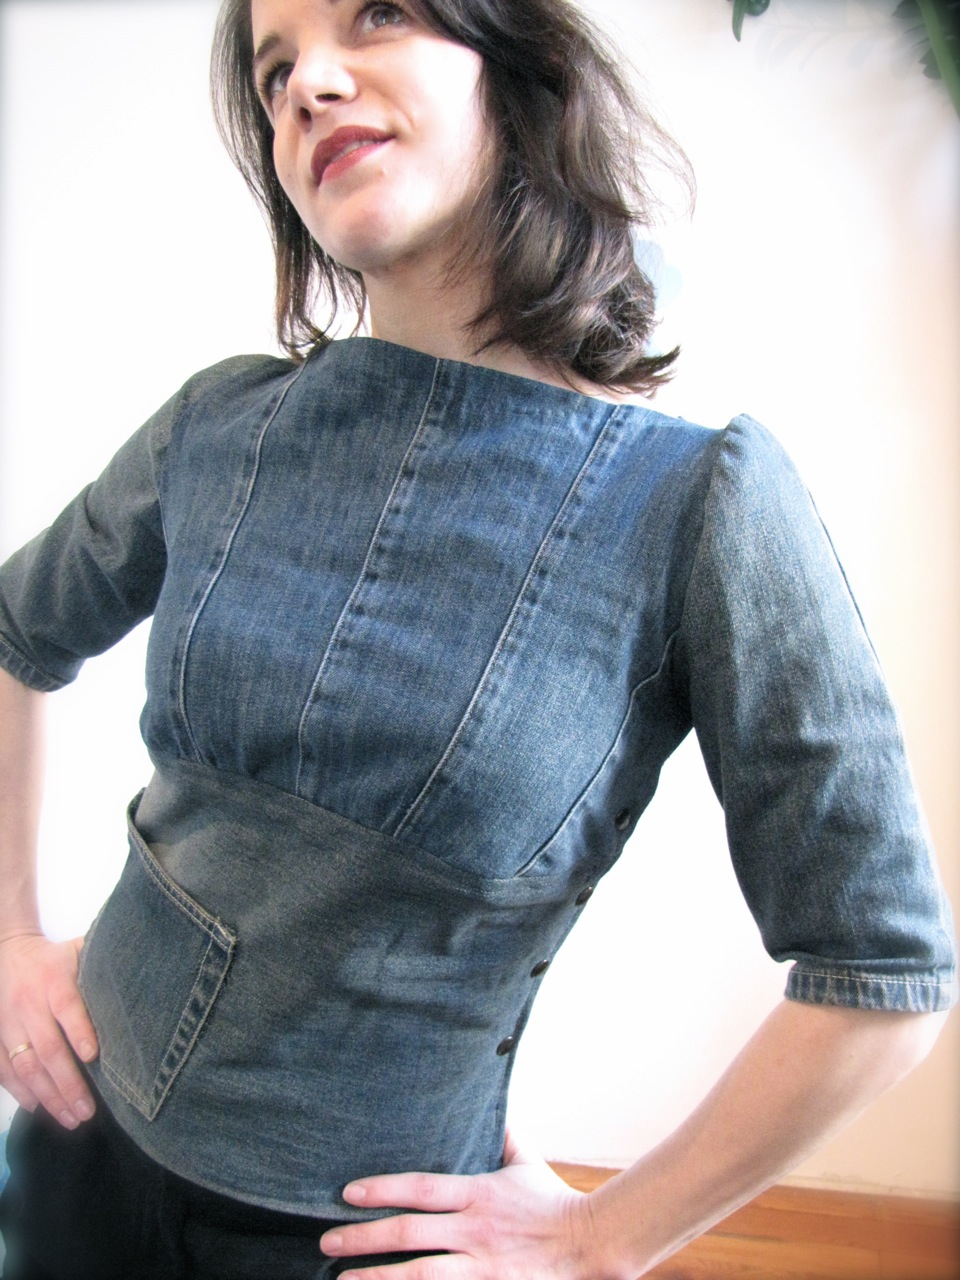 Make-me-happy Jean Top! u2013 Sewing Projects | BurdaStyle.com